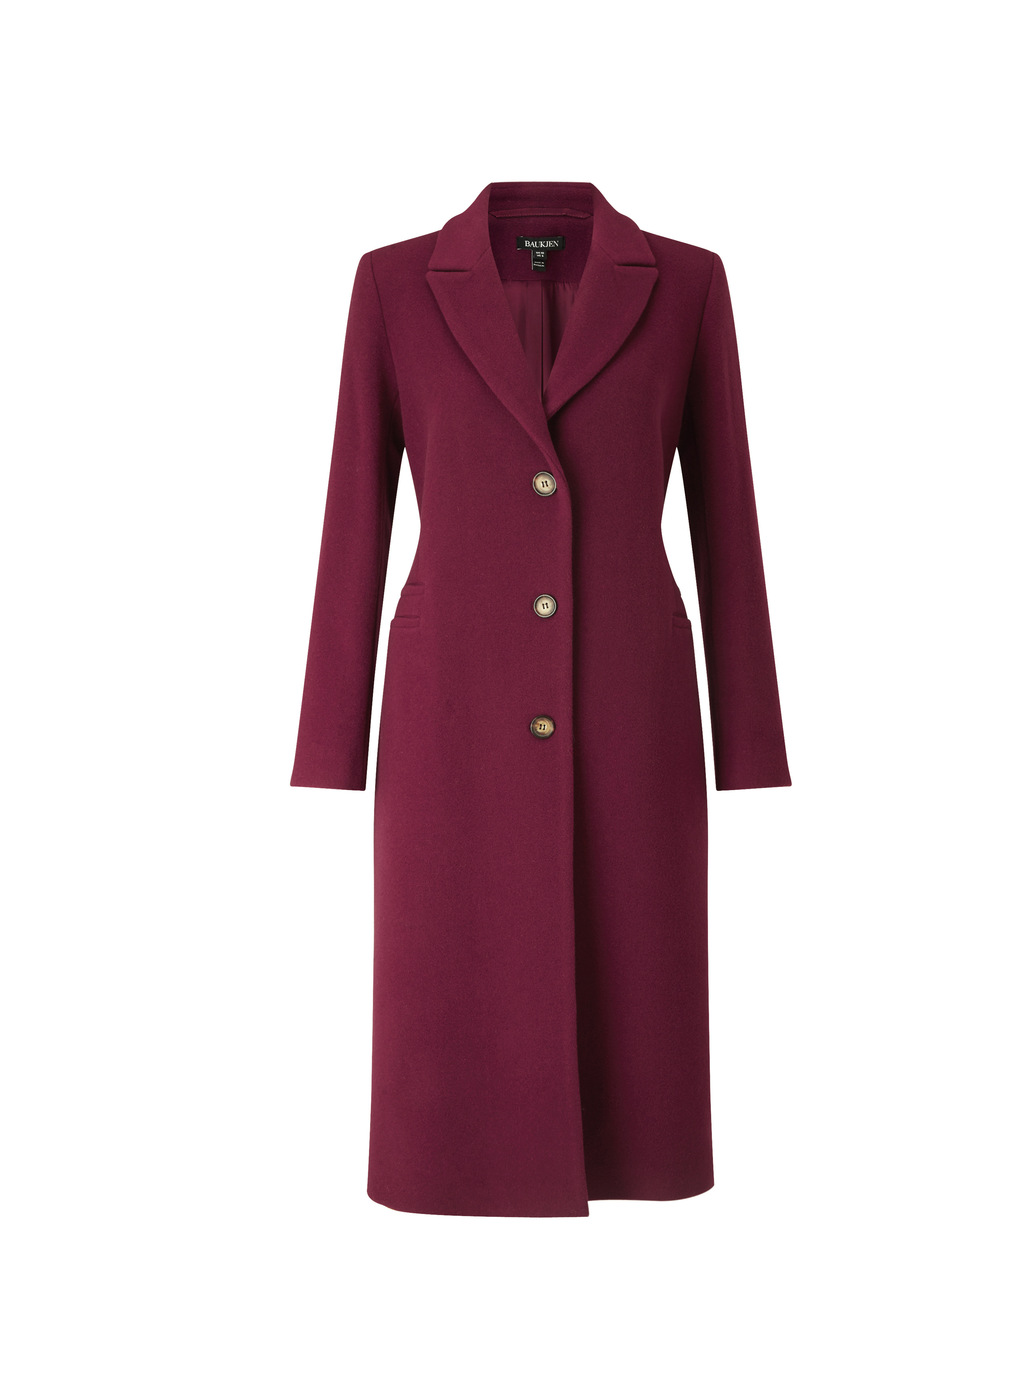 Womenswear Sailsbury City Coat - pattern: plain; style: single breasted; length: on the knee; collar: standard lapel/rever collar; predominant colour: aubergine; fit: tailored/fitted; fibres: wool - mix; sleeve length: long sleeve; sleeve style: standard; collar break: medium; pattern type: fabric; texture group: woven bulky/heavy; occasions: creative work; season: a/w 2016